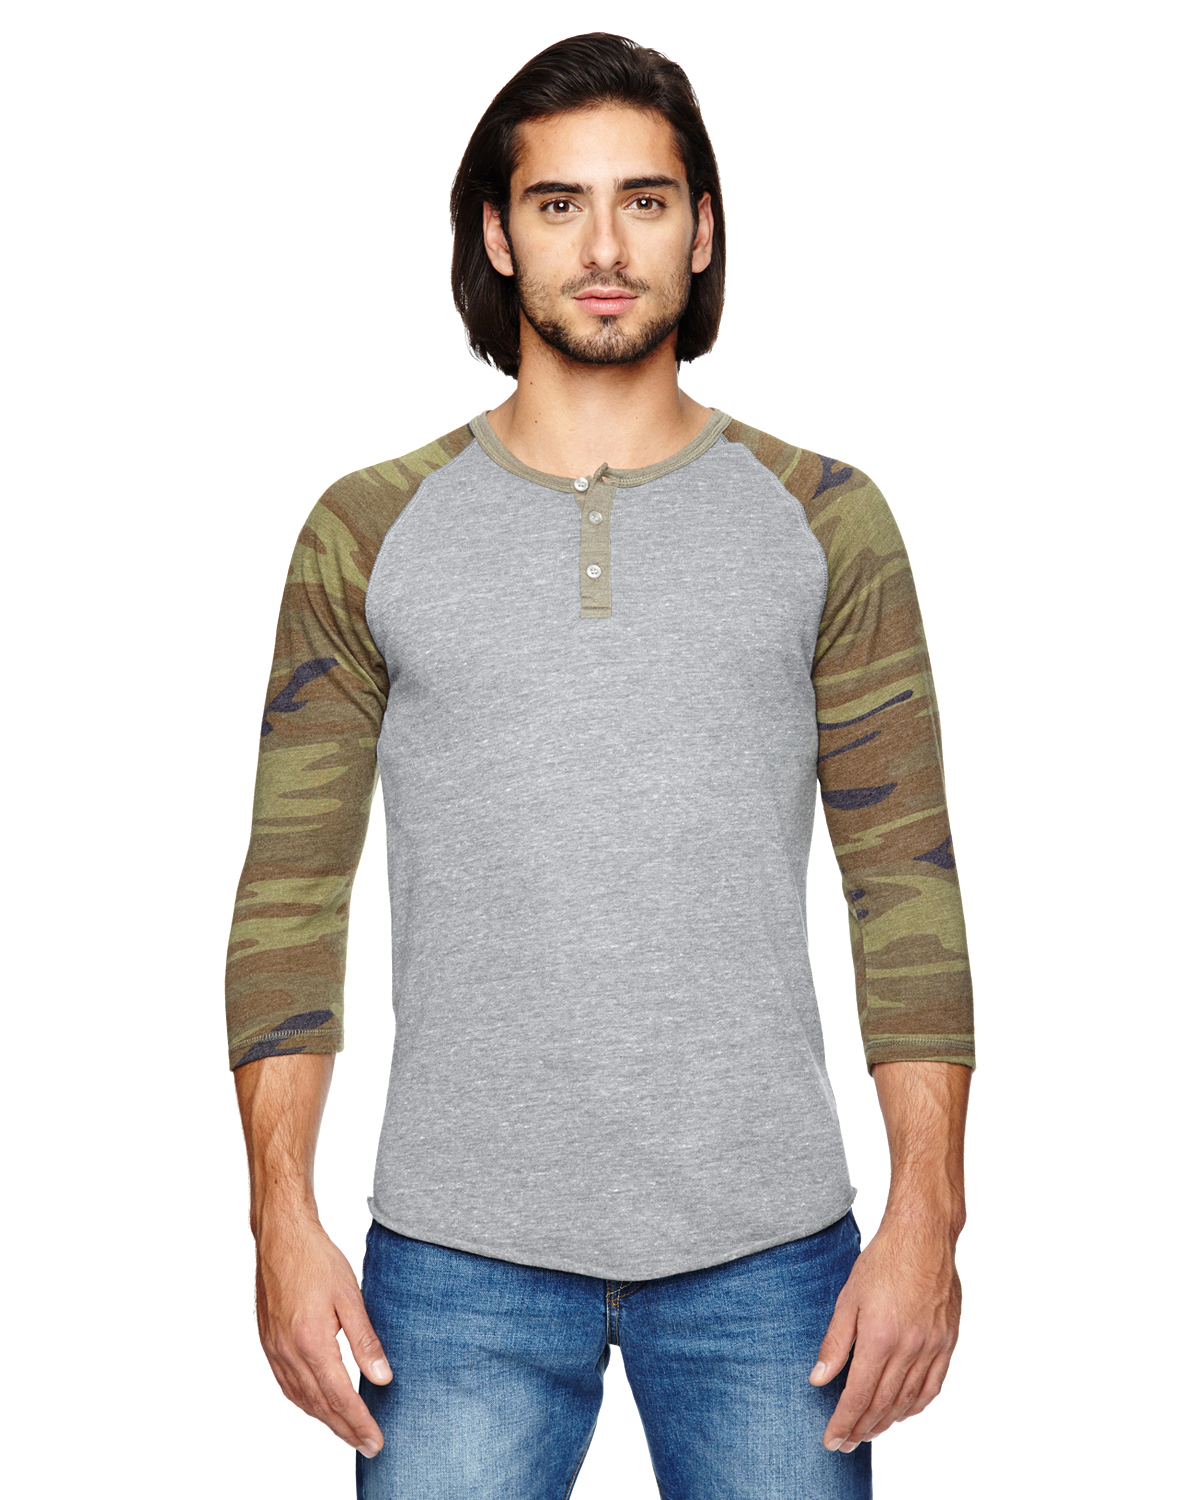 click to view Eco Grey/Camo